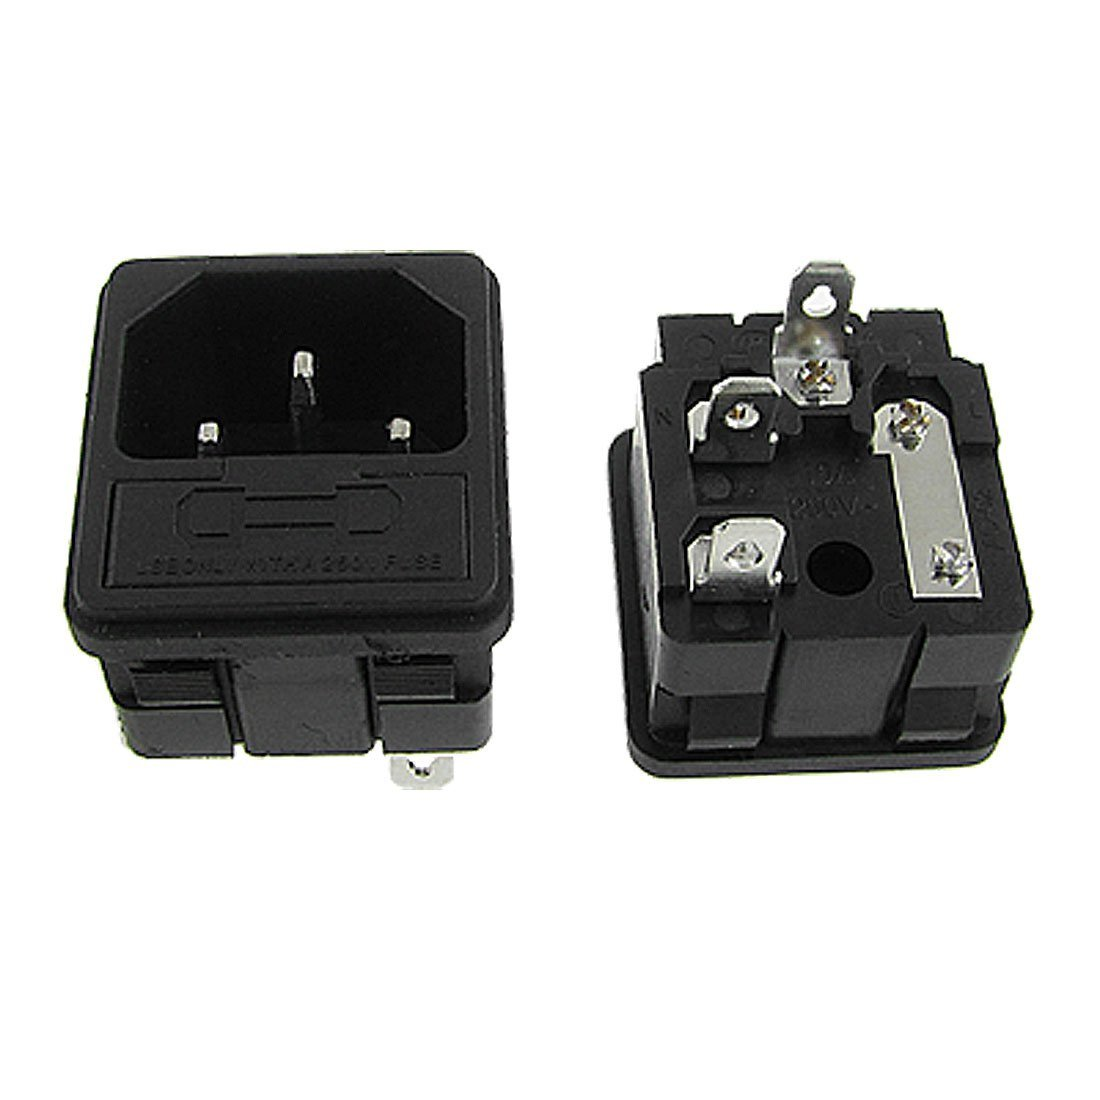 SODIAL(R) 5 x IEC 320 C14 Inlet Male Power Plug Sockets Clamp Type w Fuse Holder